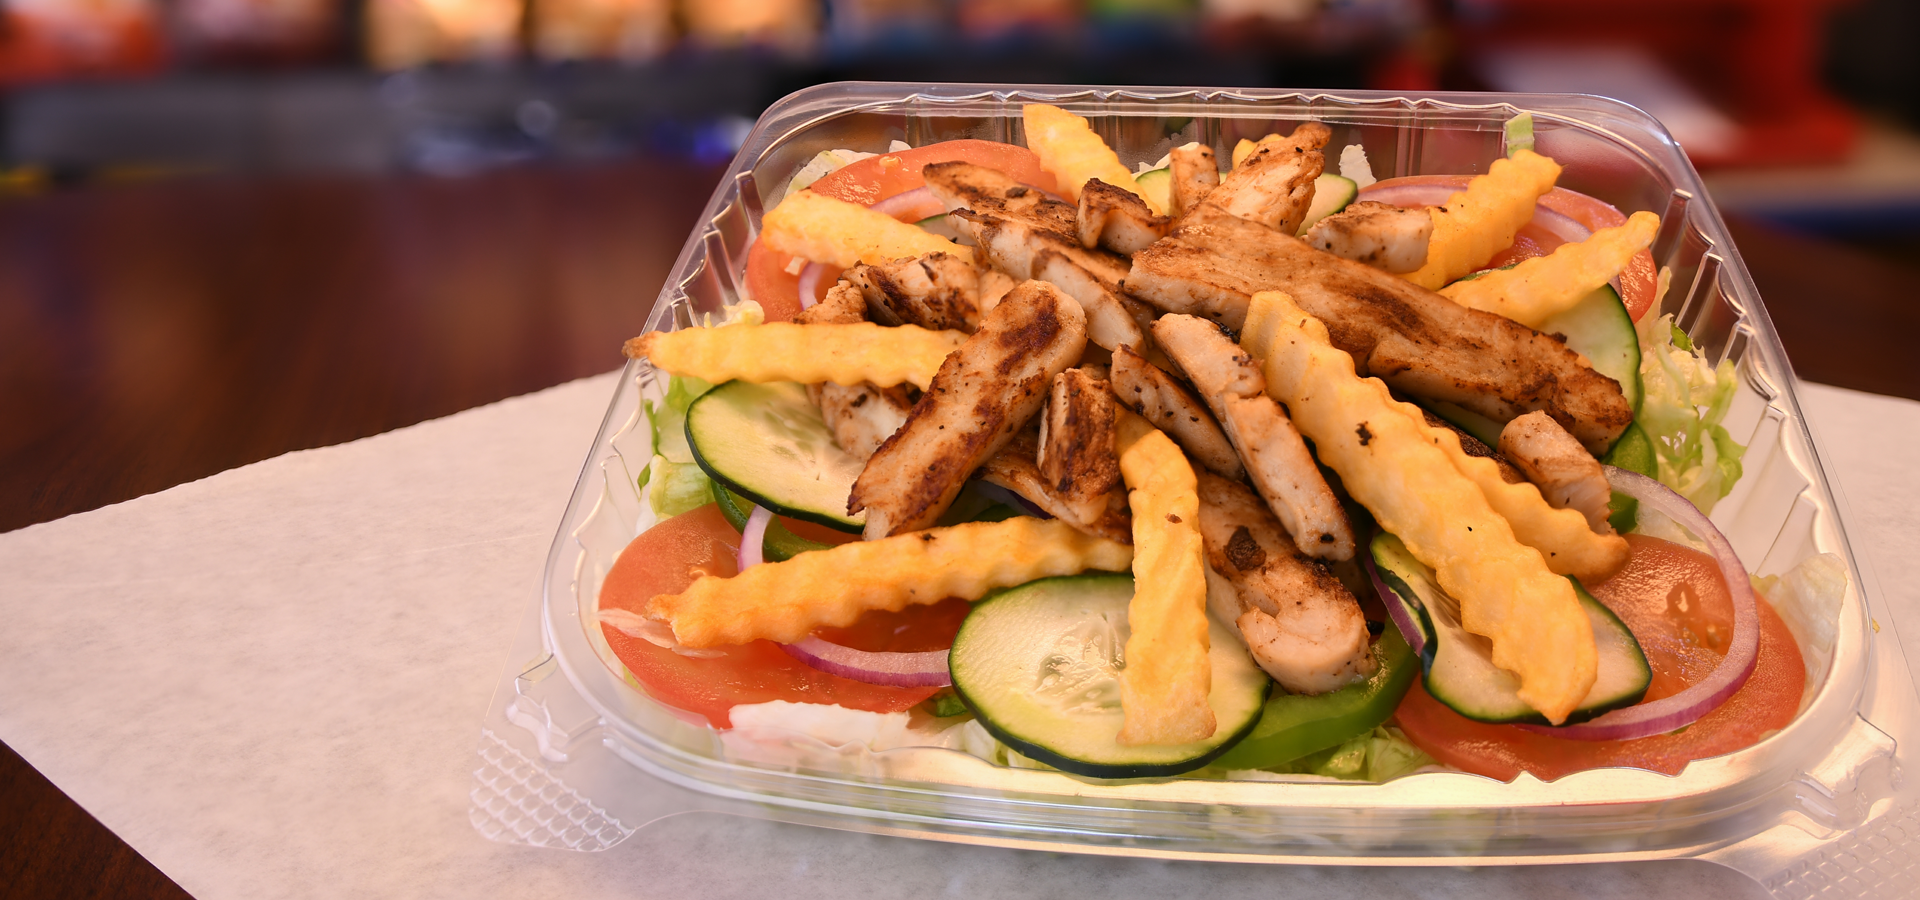 Grilled Chicken salad with fries